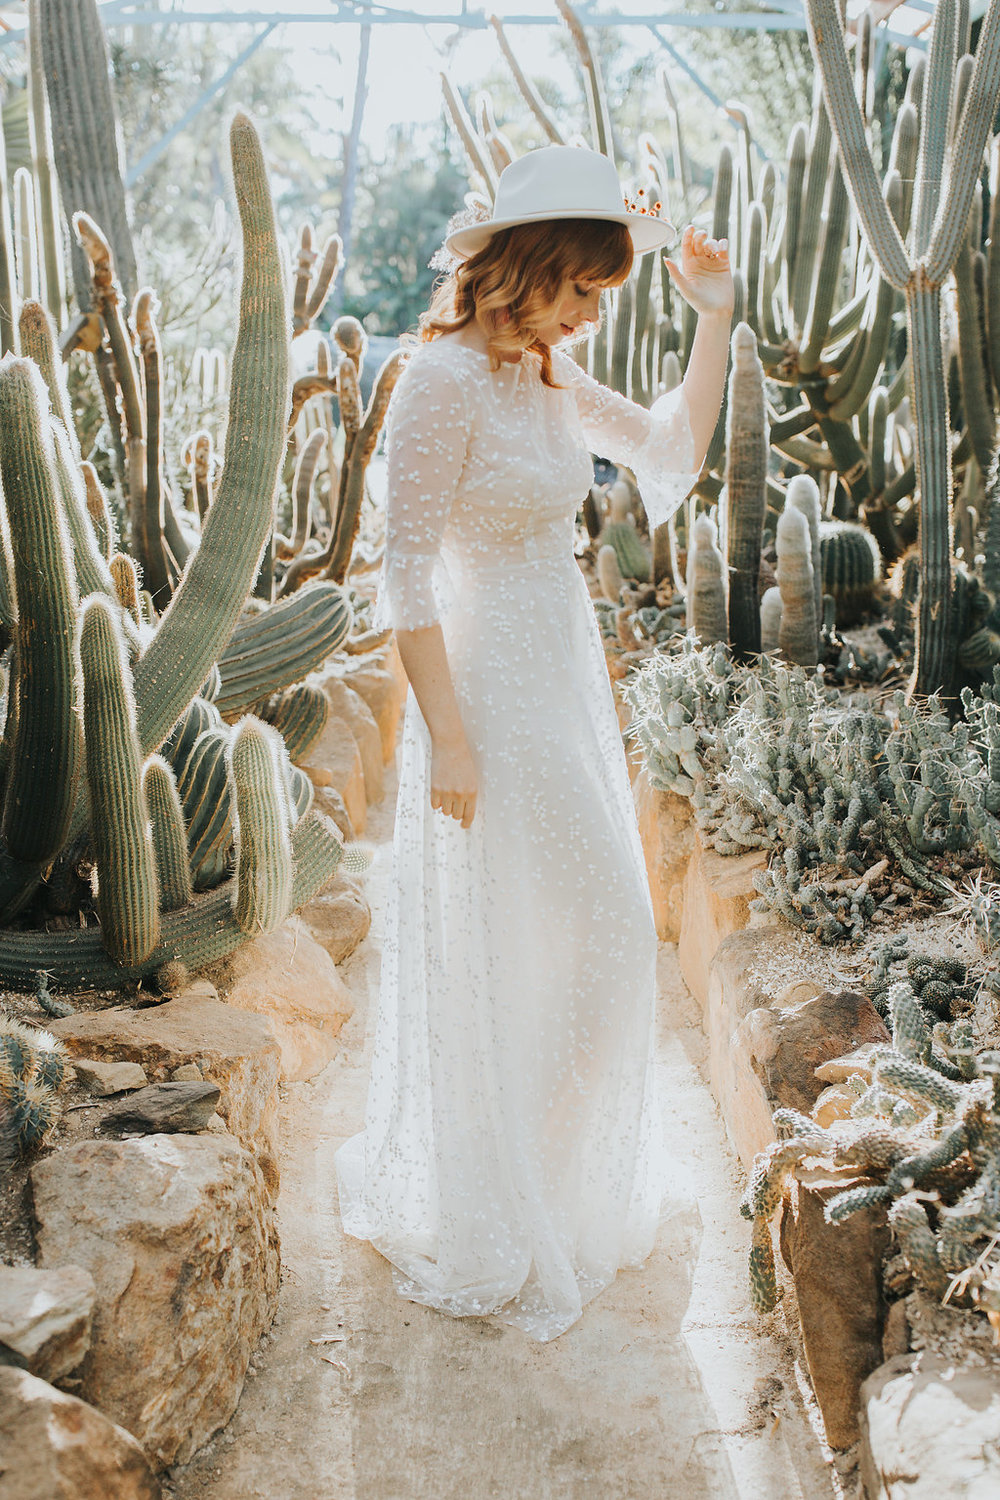 Cactus Queen Editorial 2018 - Jennifer Gifford Designs Olivia Overlay